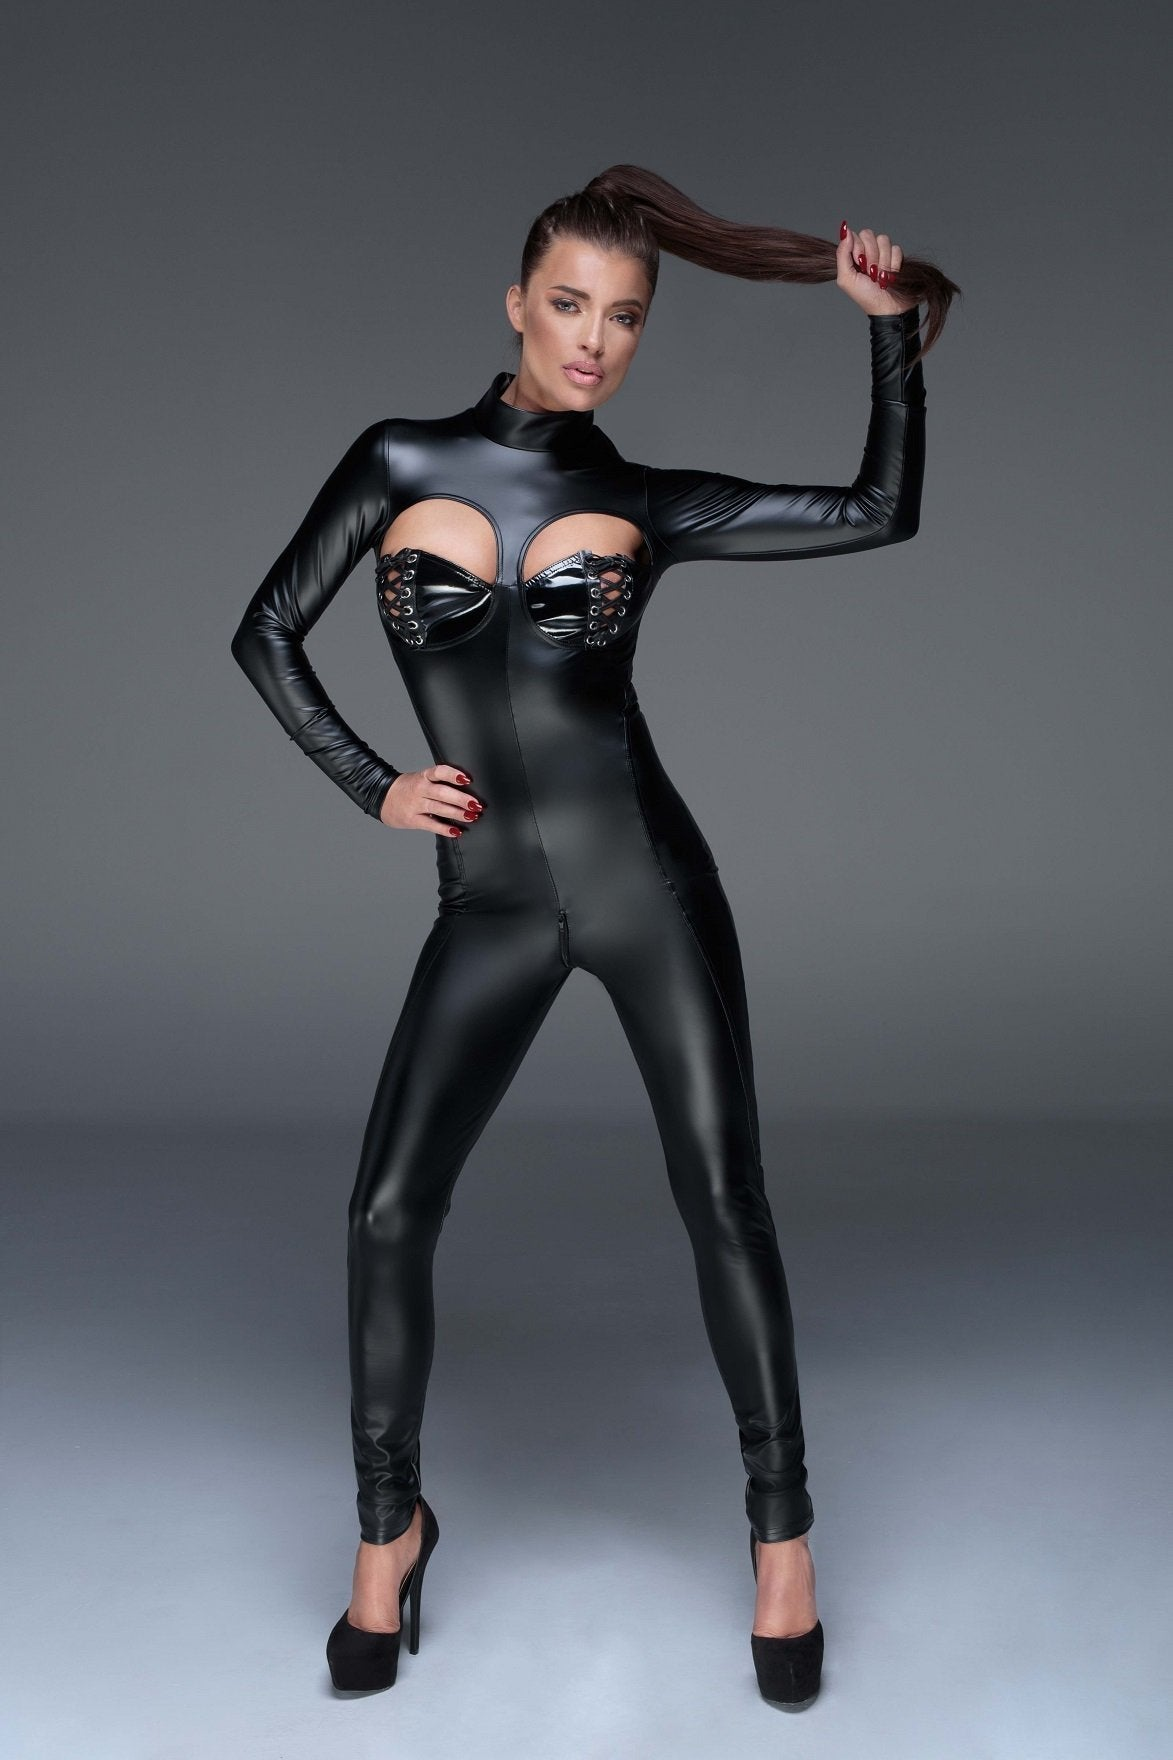 Noir Handmade Catsuit UK 8 / Black Power Wet Look Catsuit F149 by Noir Handmade